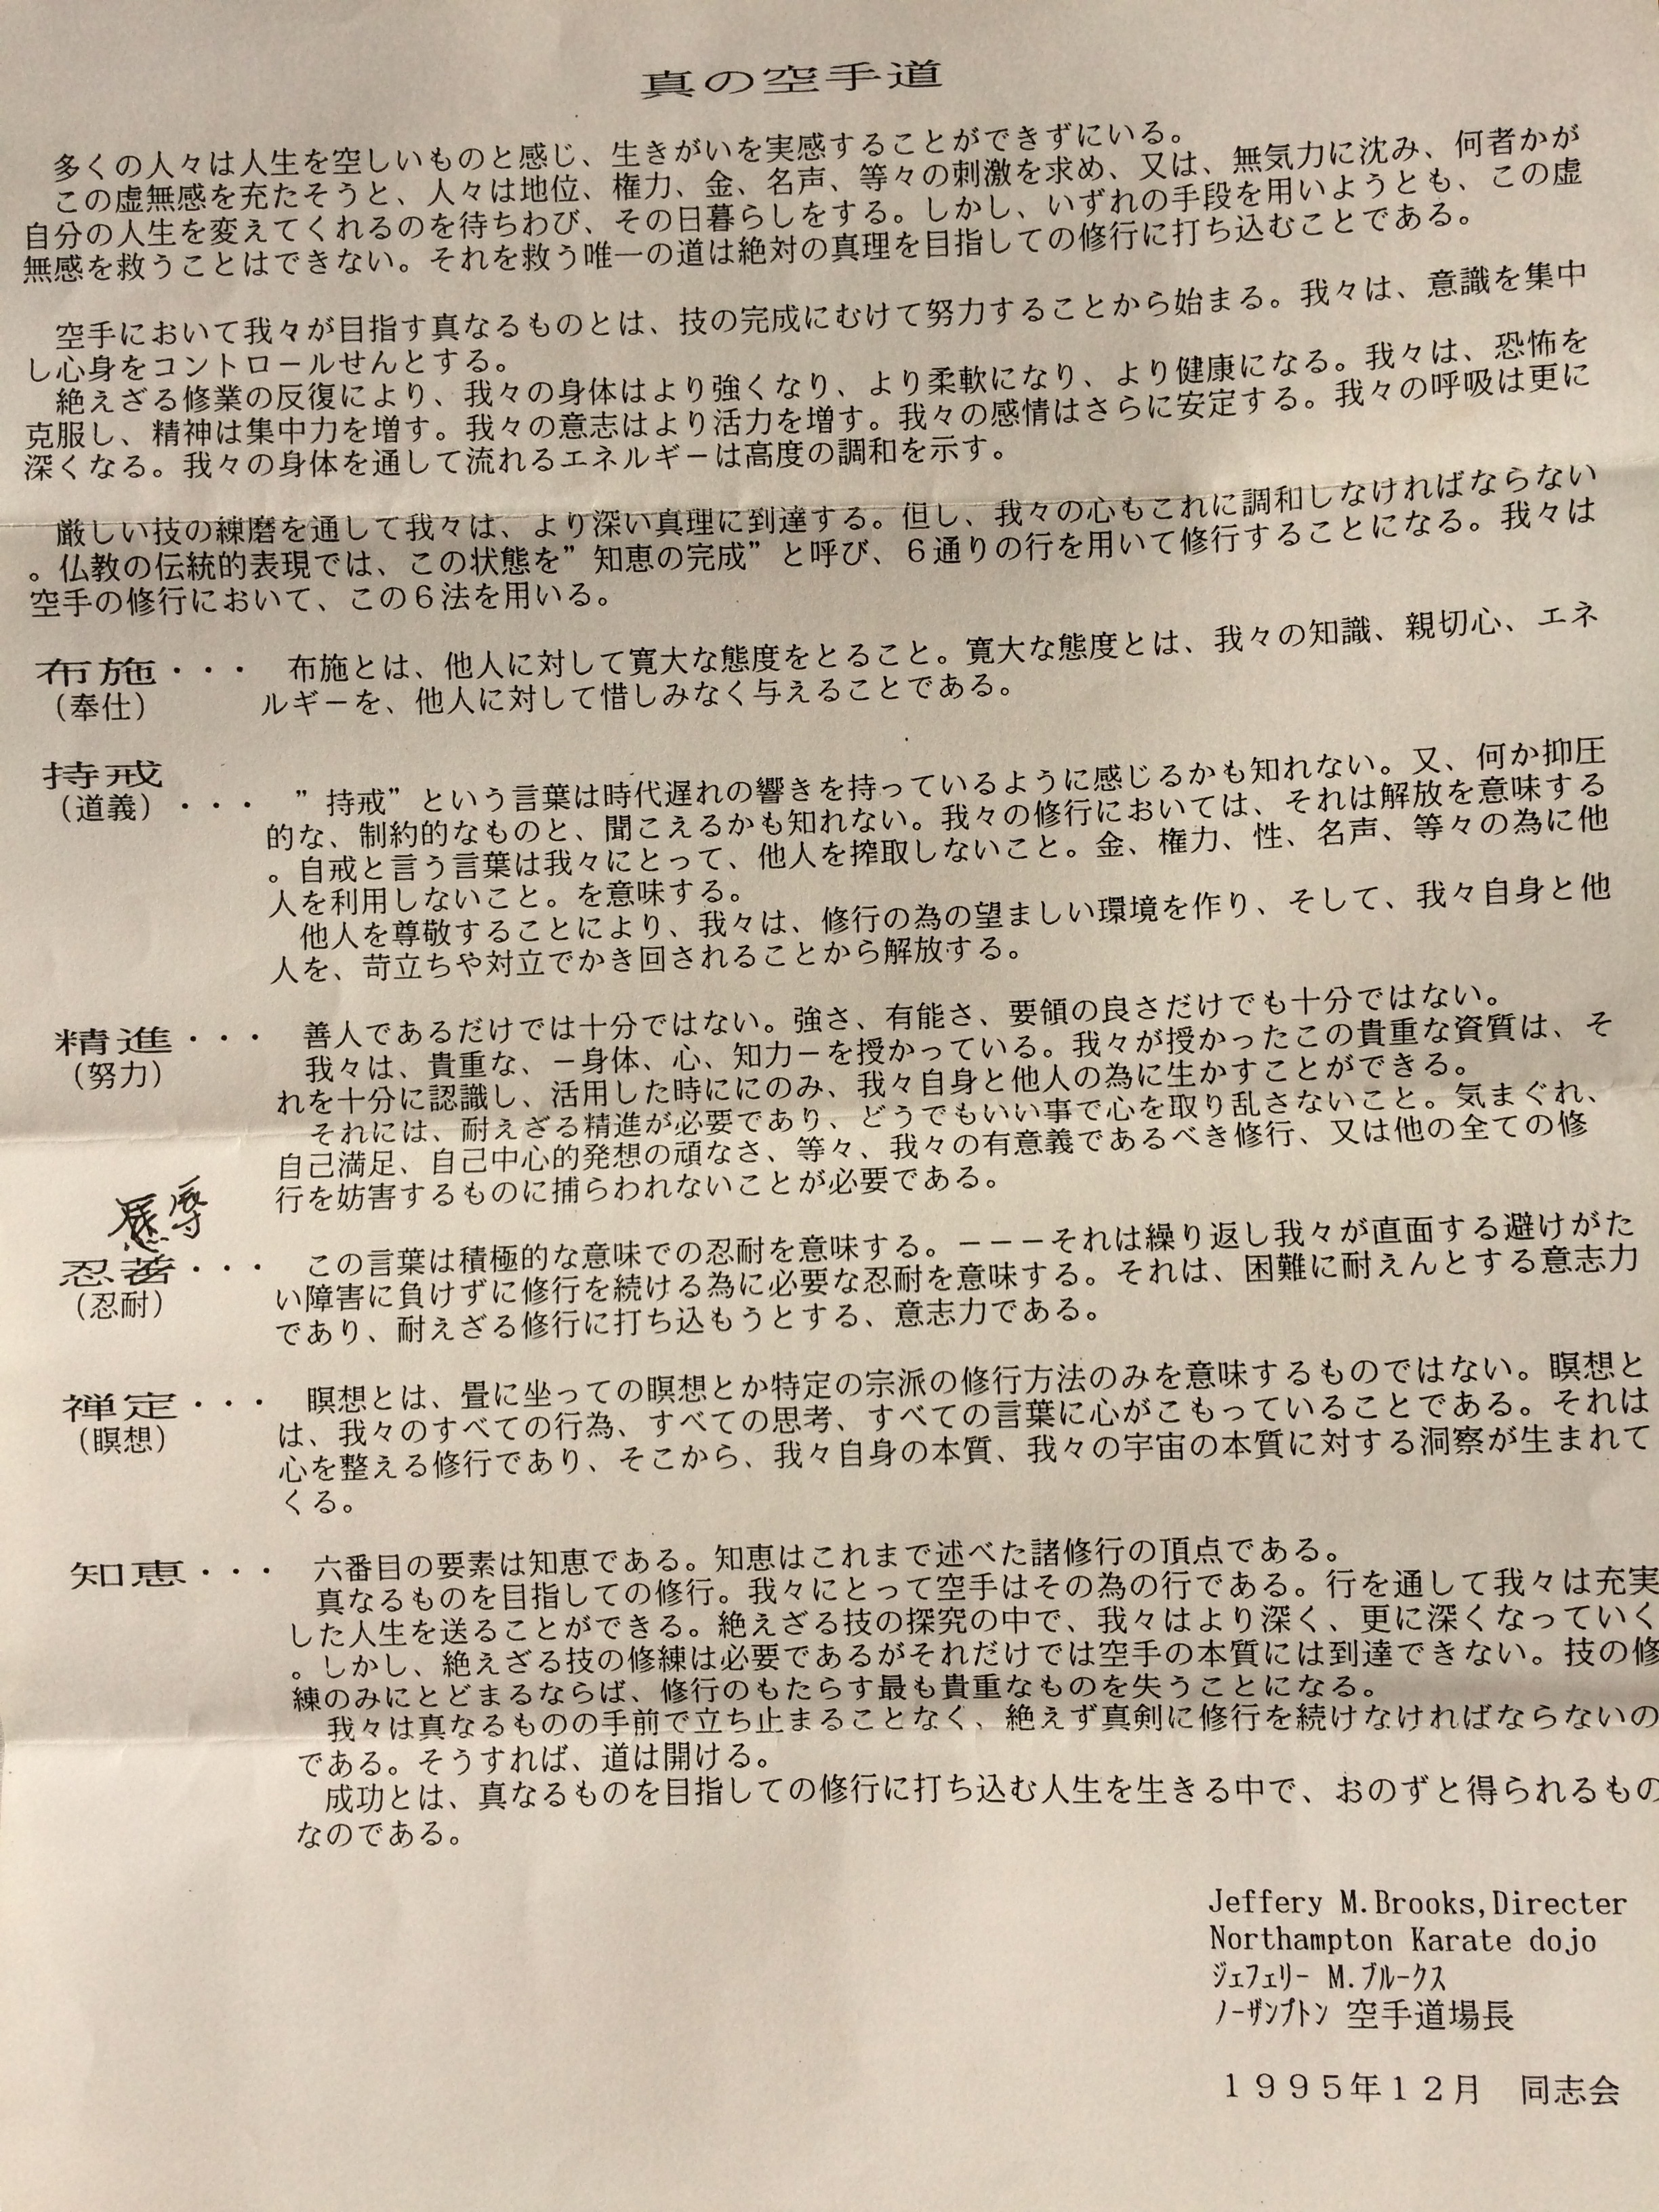 Translation of 1995 message